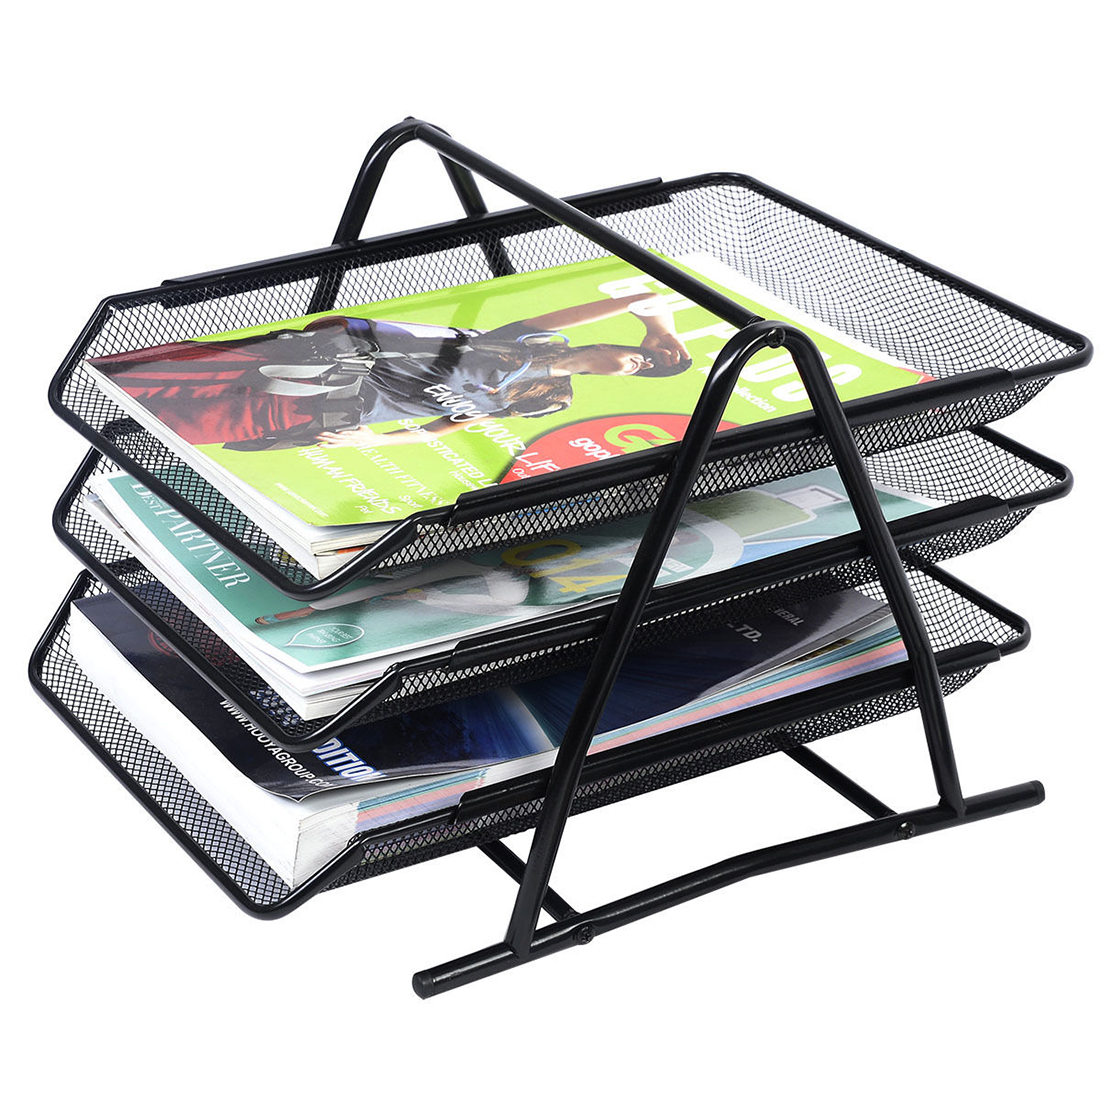 Sosw Office Filing Trays Holder A4 Doent Letter Paper Wire Mesh Storage Organiser In File Tray From School Supplies On Aliexpress Alibaba